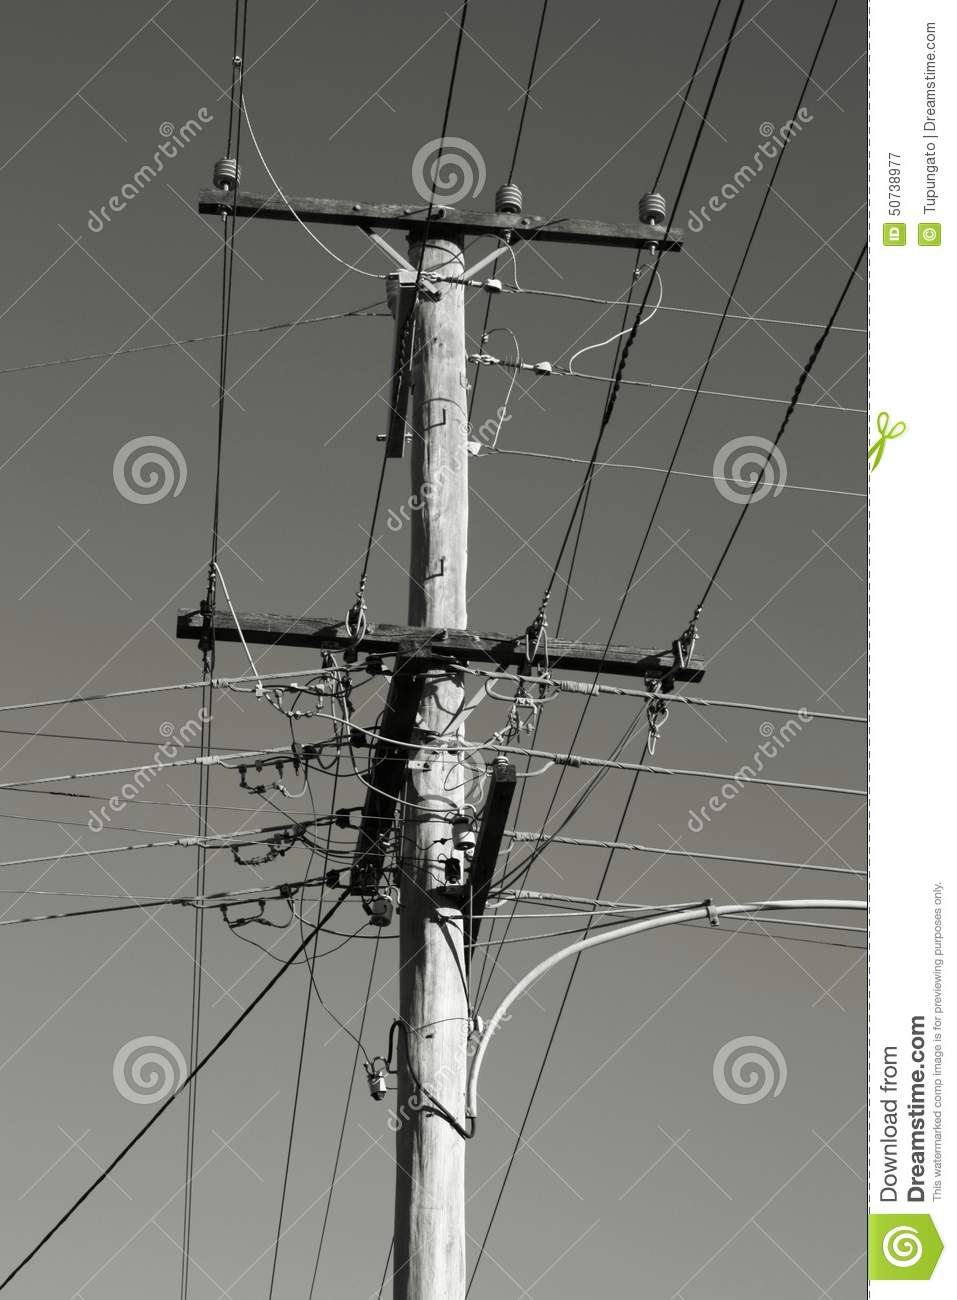 Electric pole stock image. Image of wires, black, network - 50738977